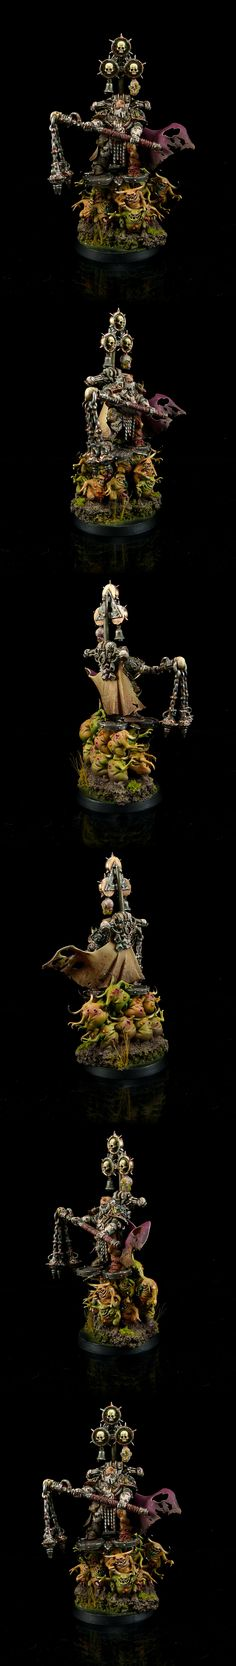 Death Guard Chaos Lord of Nurgle